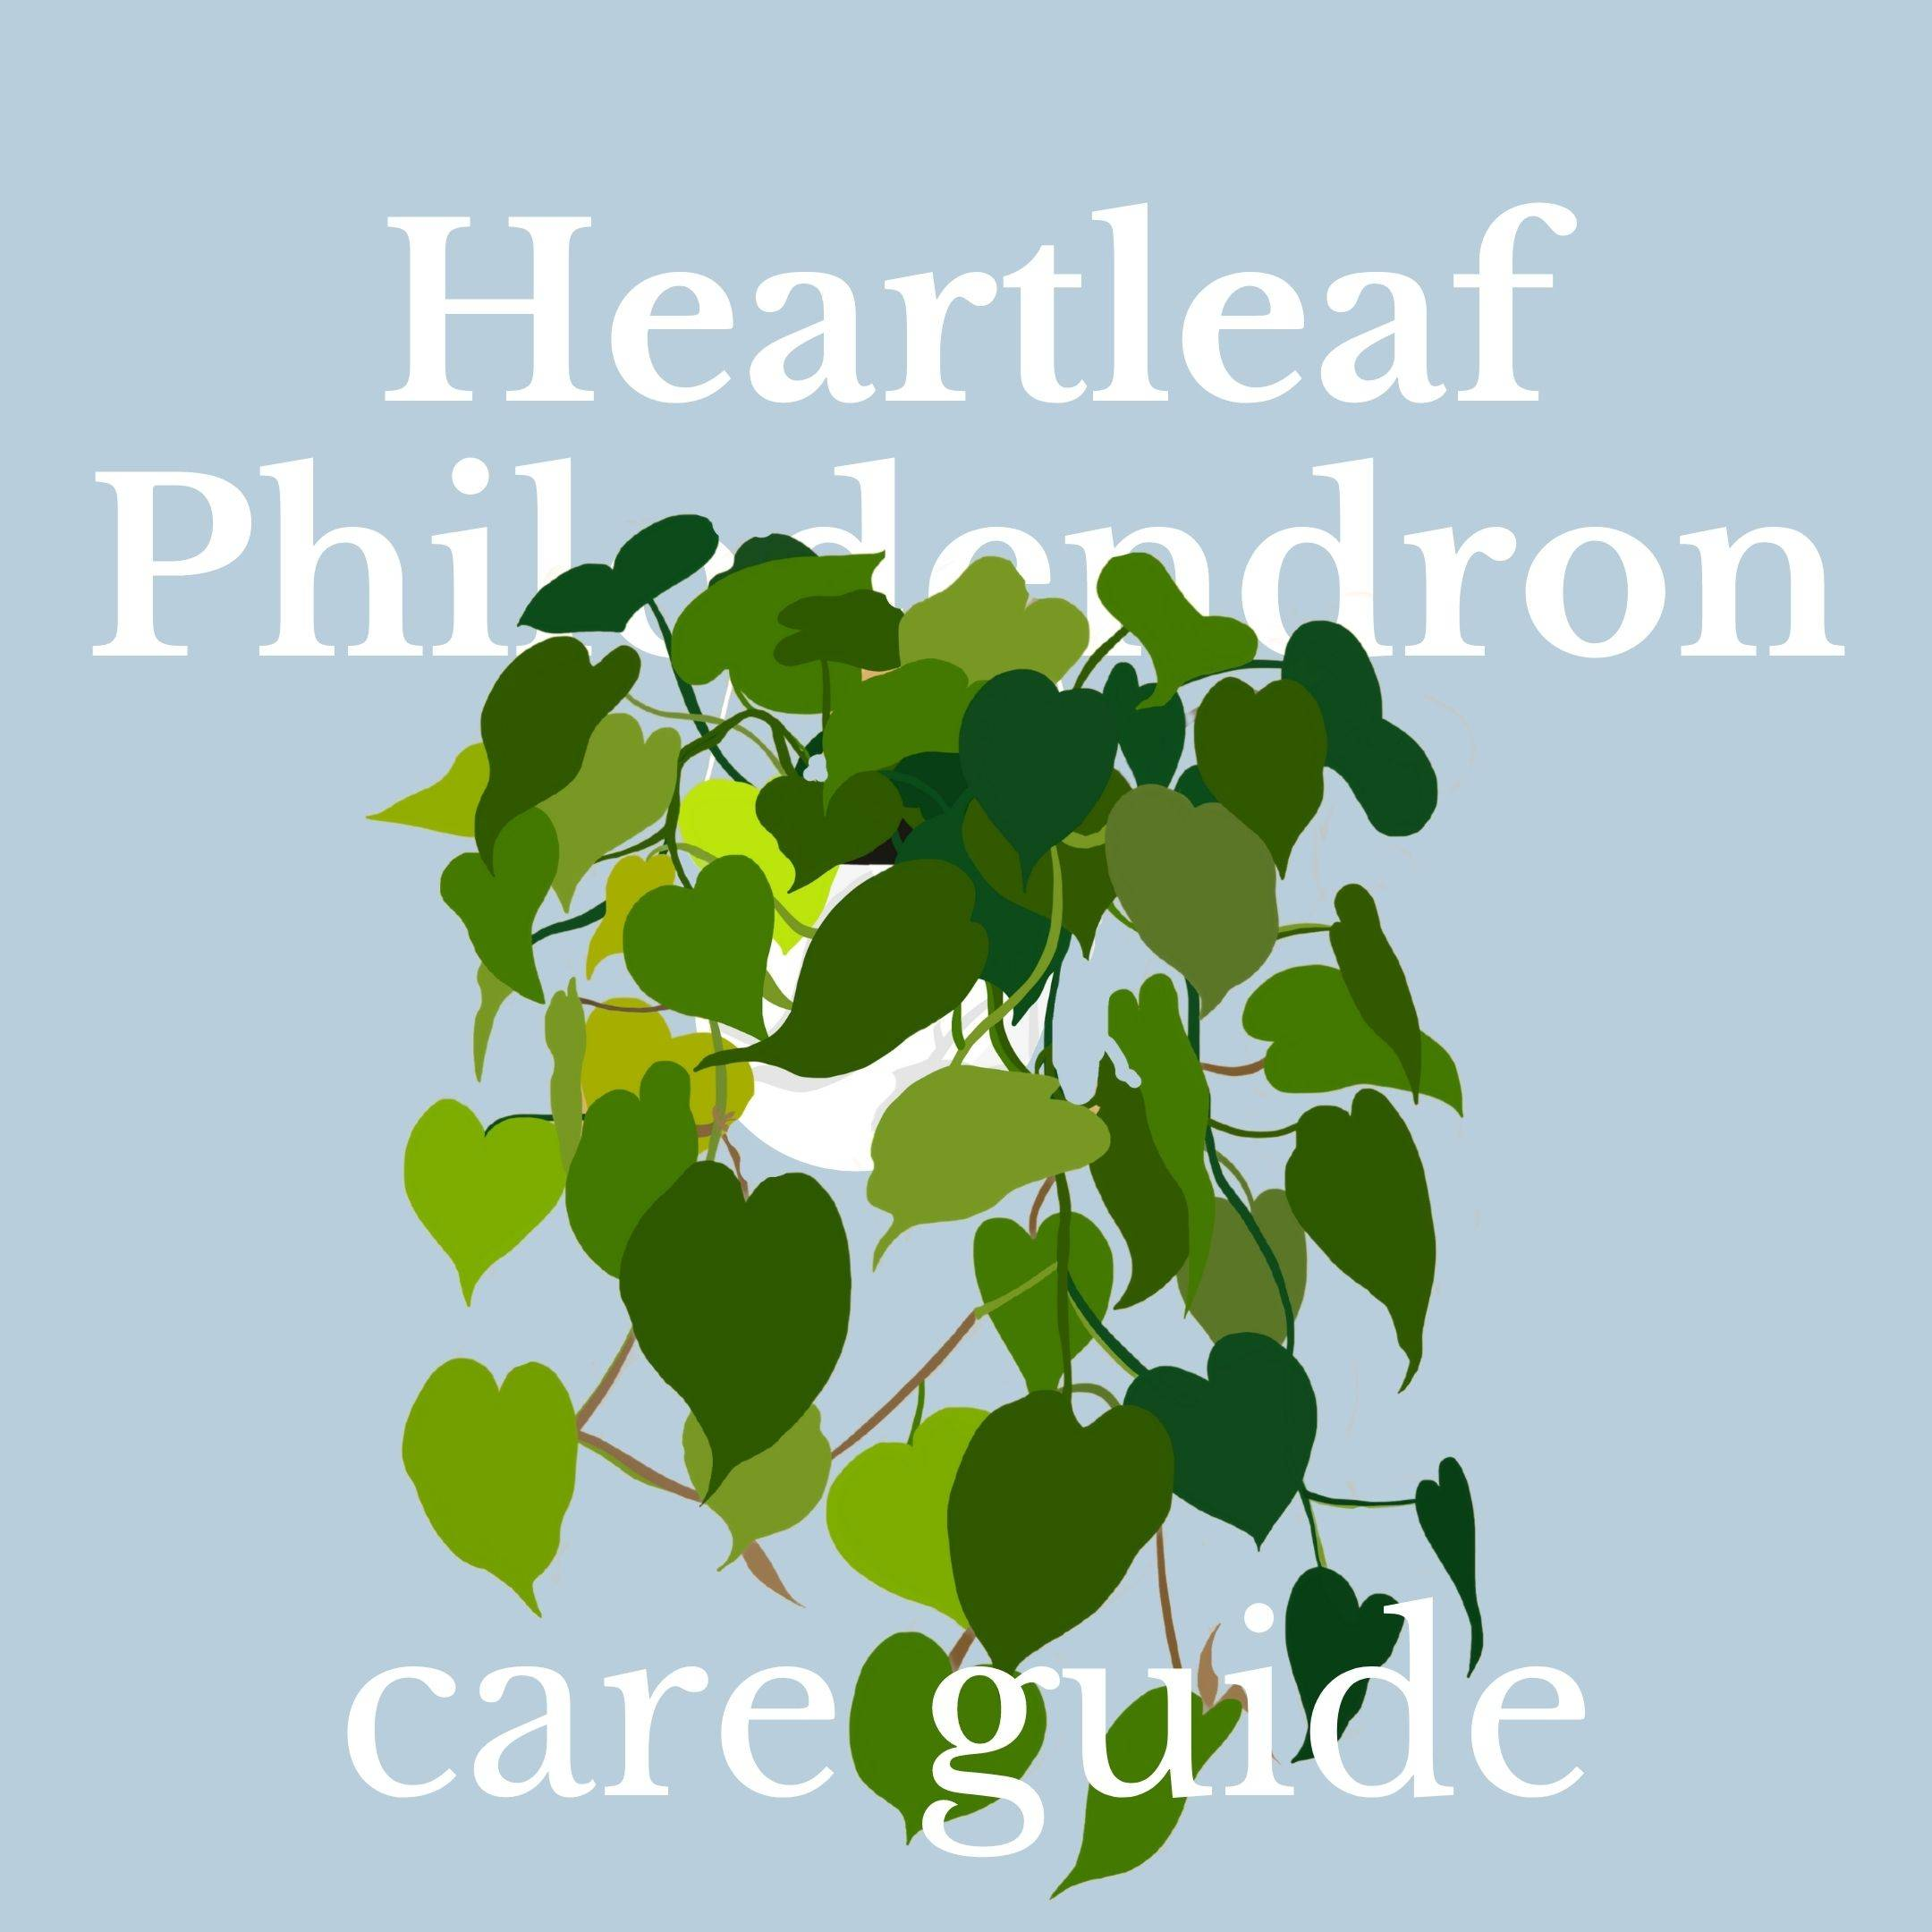 Drawing of heartleaf philodendron plant